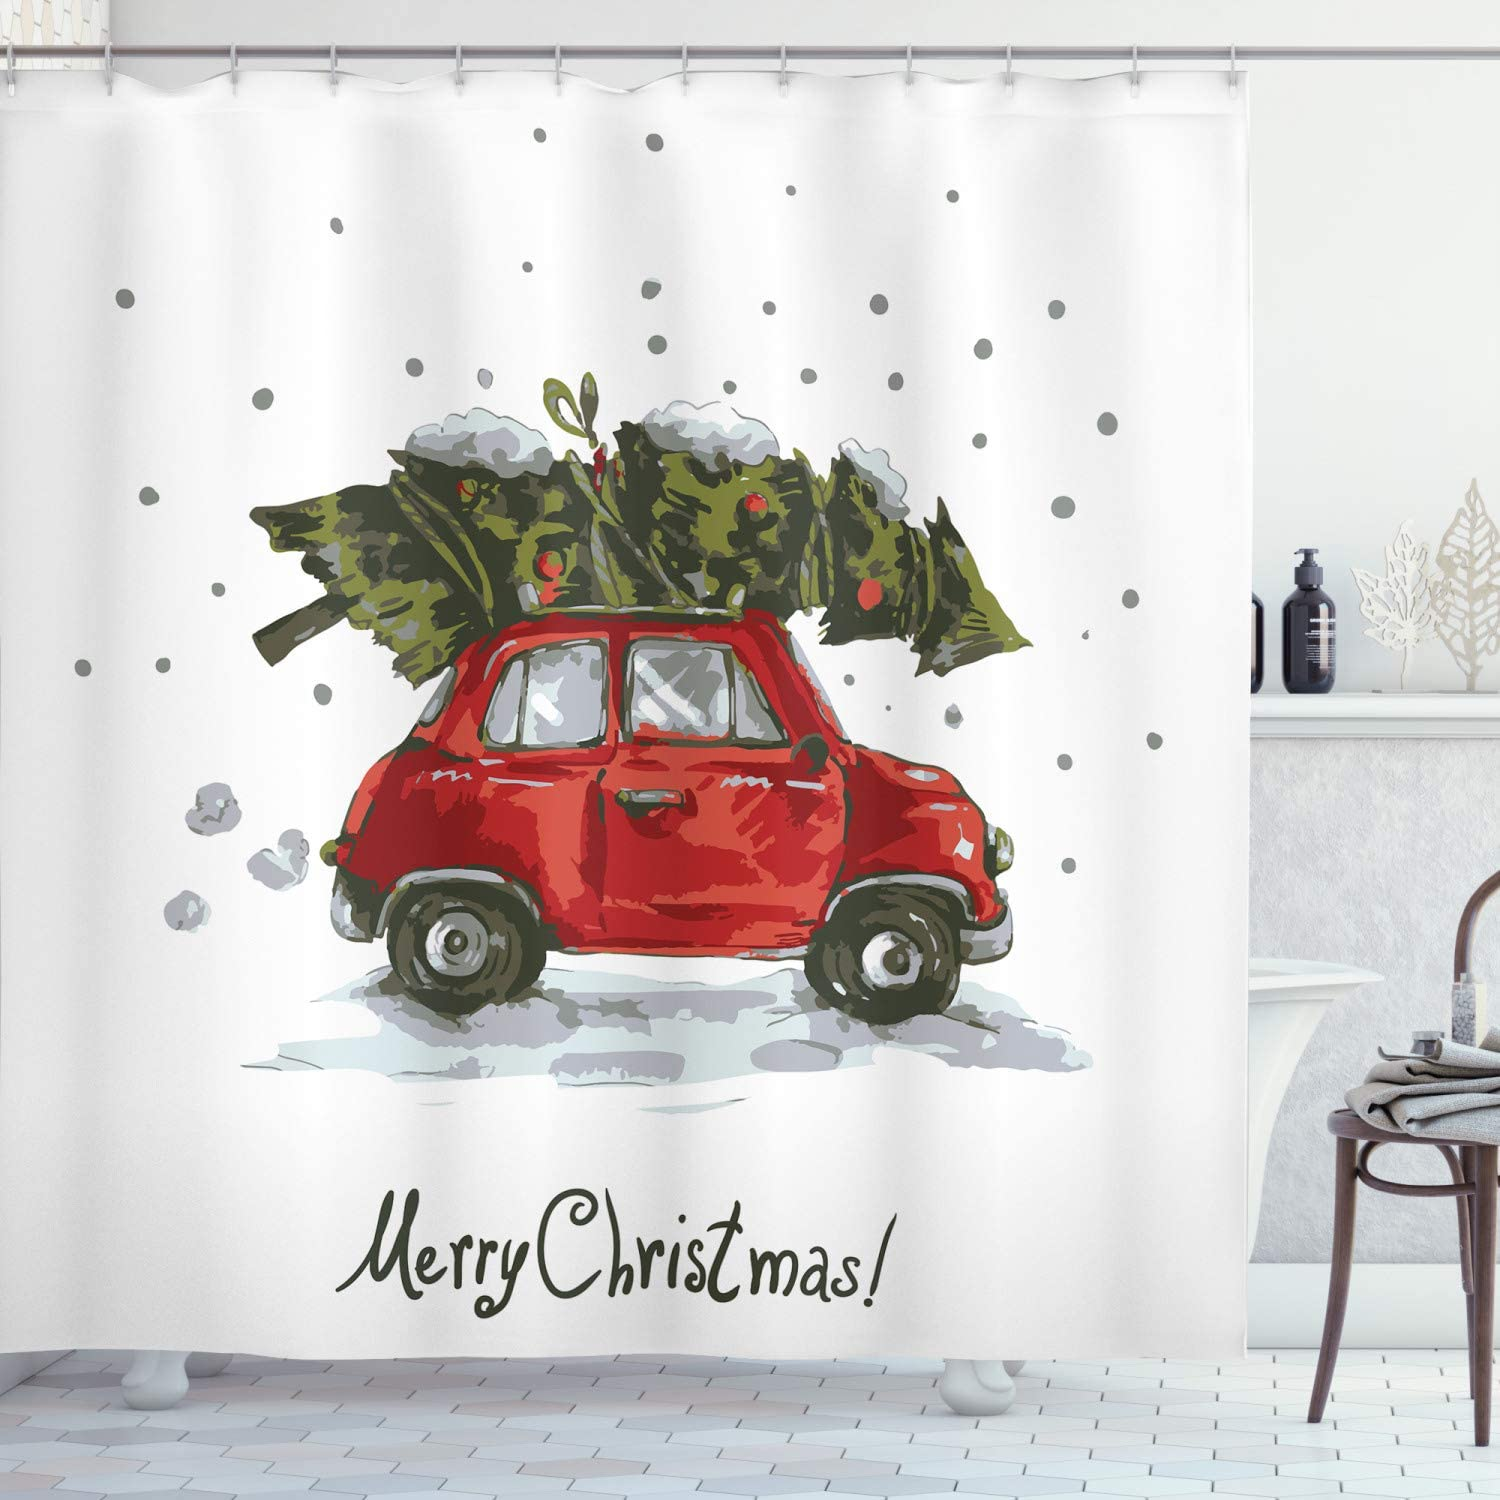 "Ambesonne Christmas Shower Curtain, Retro Style Car Xmas Tree Vintage Family Style Illustration Snowy Winter Art, Cloth Fabric Bathroom Decor Set with Hooks, 70"" Long, Green Vermilion"